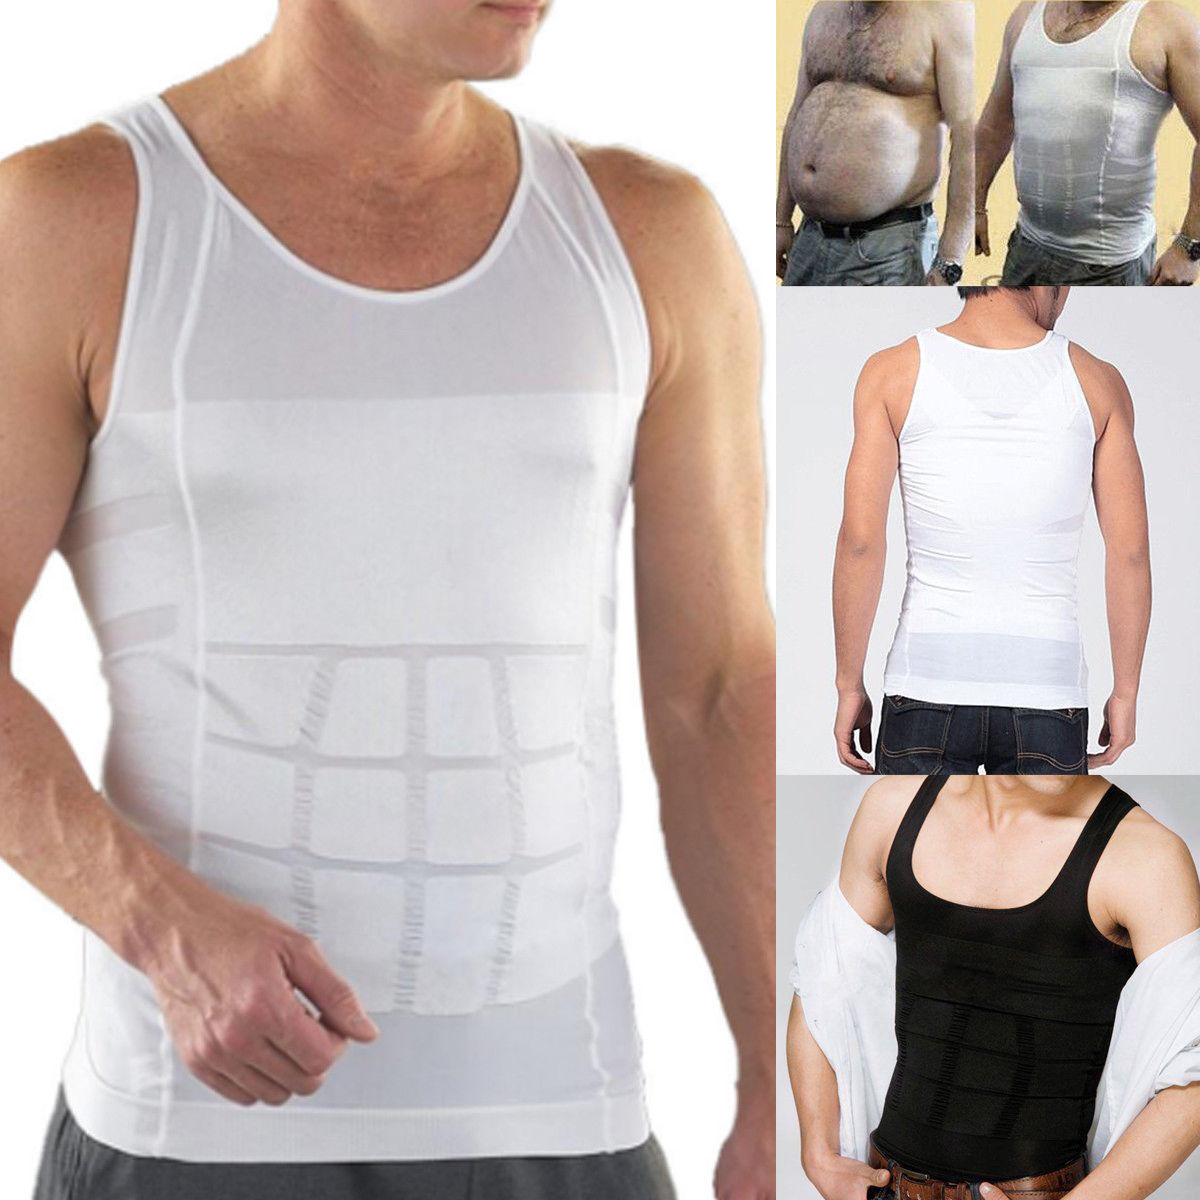 51d2a0ce1c9c9 Men Shapers Summer Solid Sleeveless Firm Tummy Belly Buster Vest ...